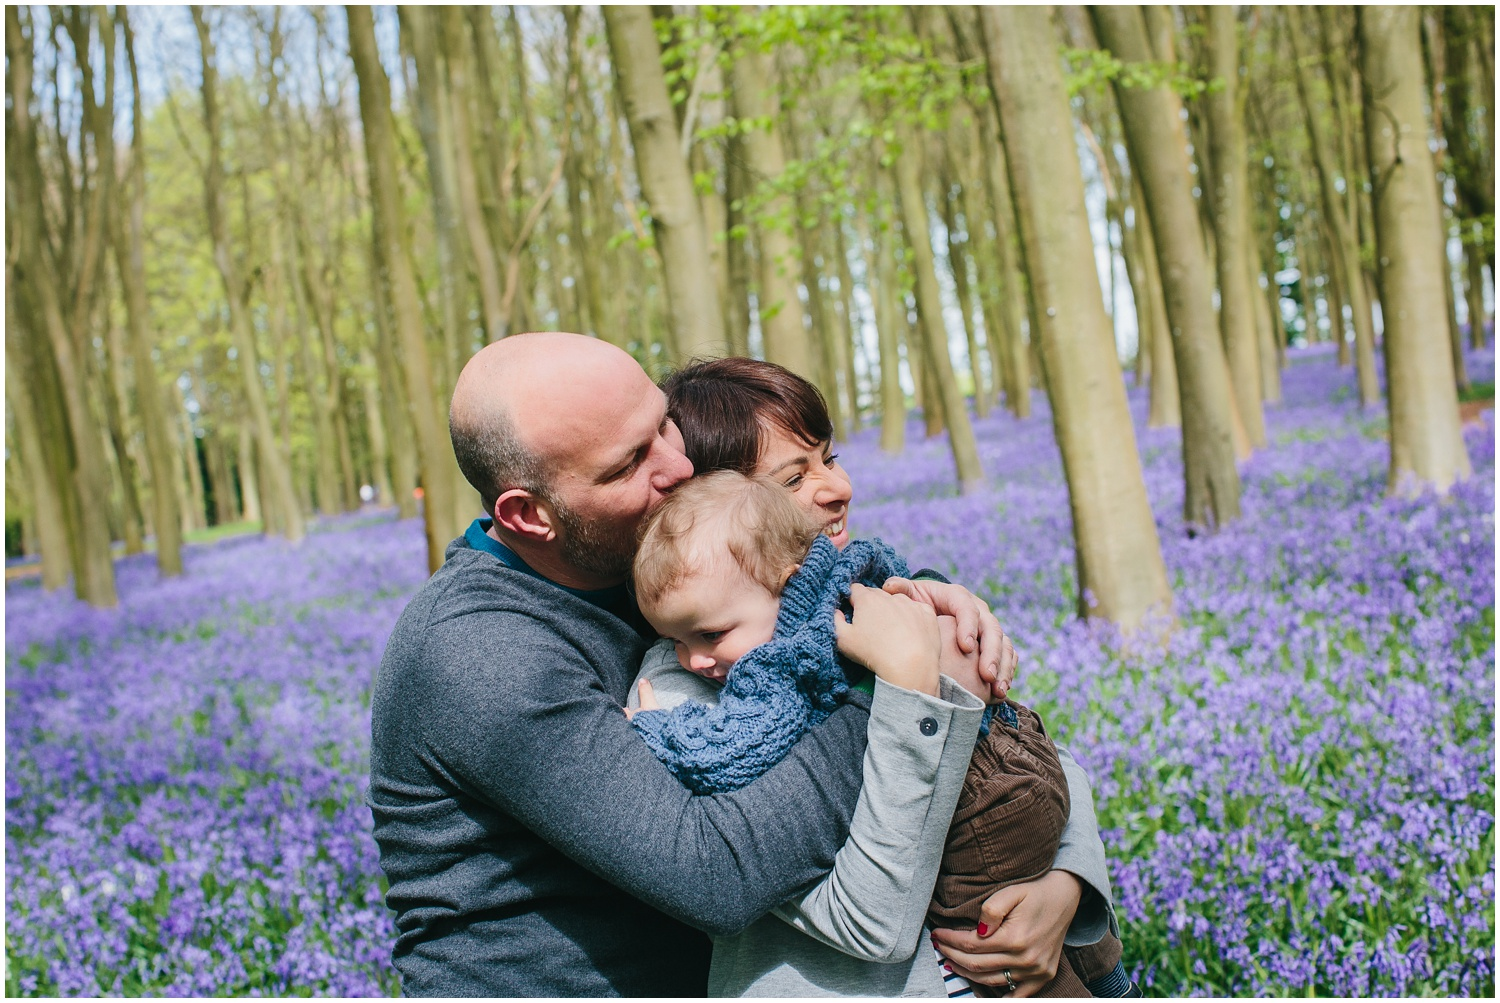 Catherine-Photography-Portraits-Family-Bluebells_0004.jpg